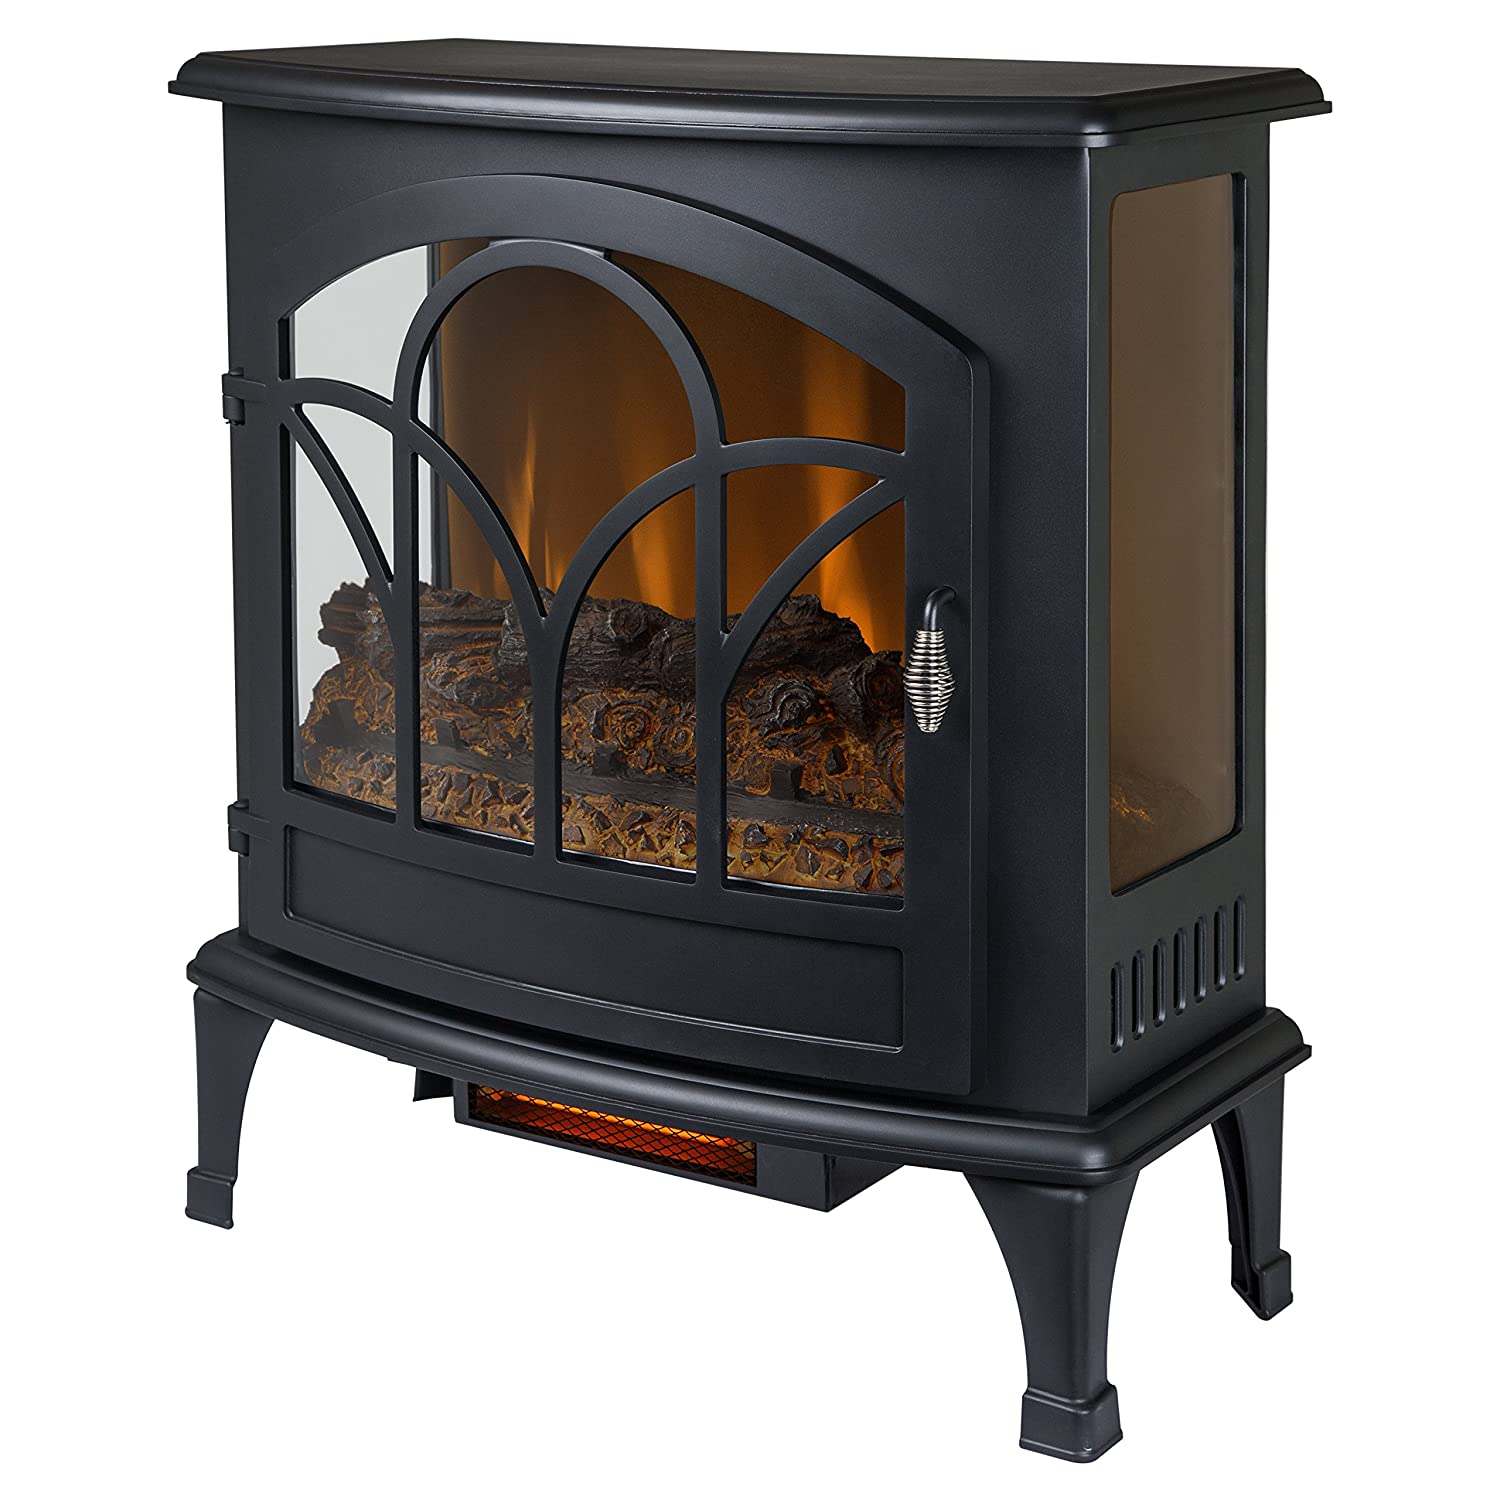 Muskoka Curved Front 25-inch Infrared Panoramic Electric Stove - Black